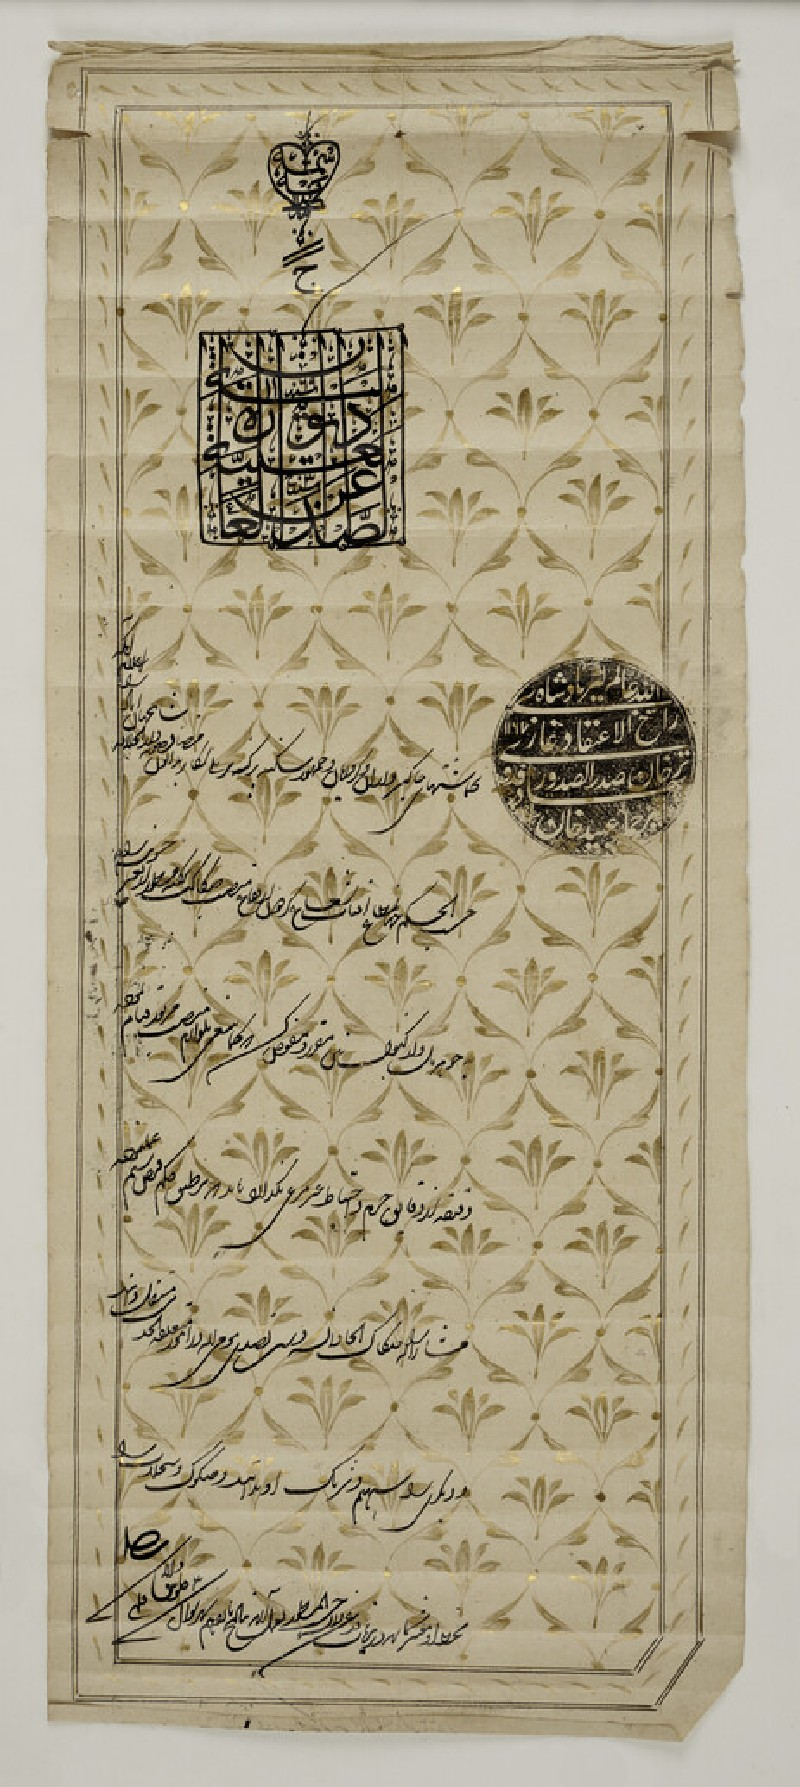 Imperial Mughal firman, said to be of Ahmad Shah